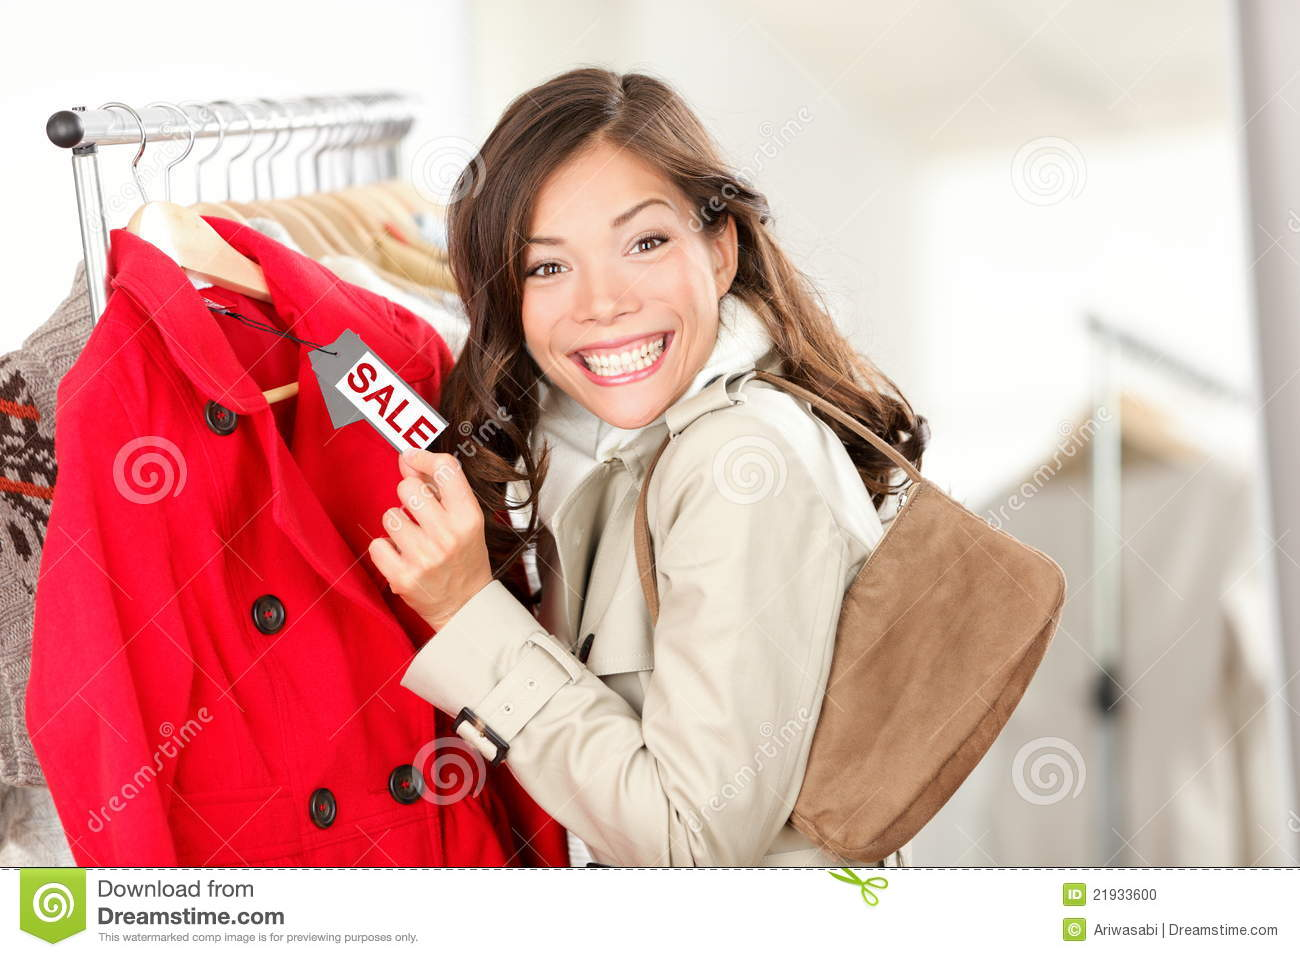 c3b3442c32 Shopping Woman At Clothes Sale Stock Photo - Image of cheap, person ...